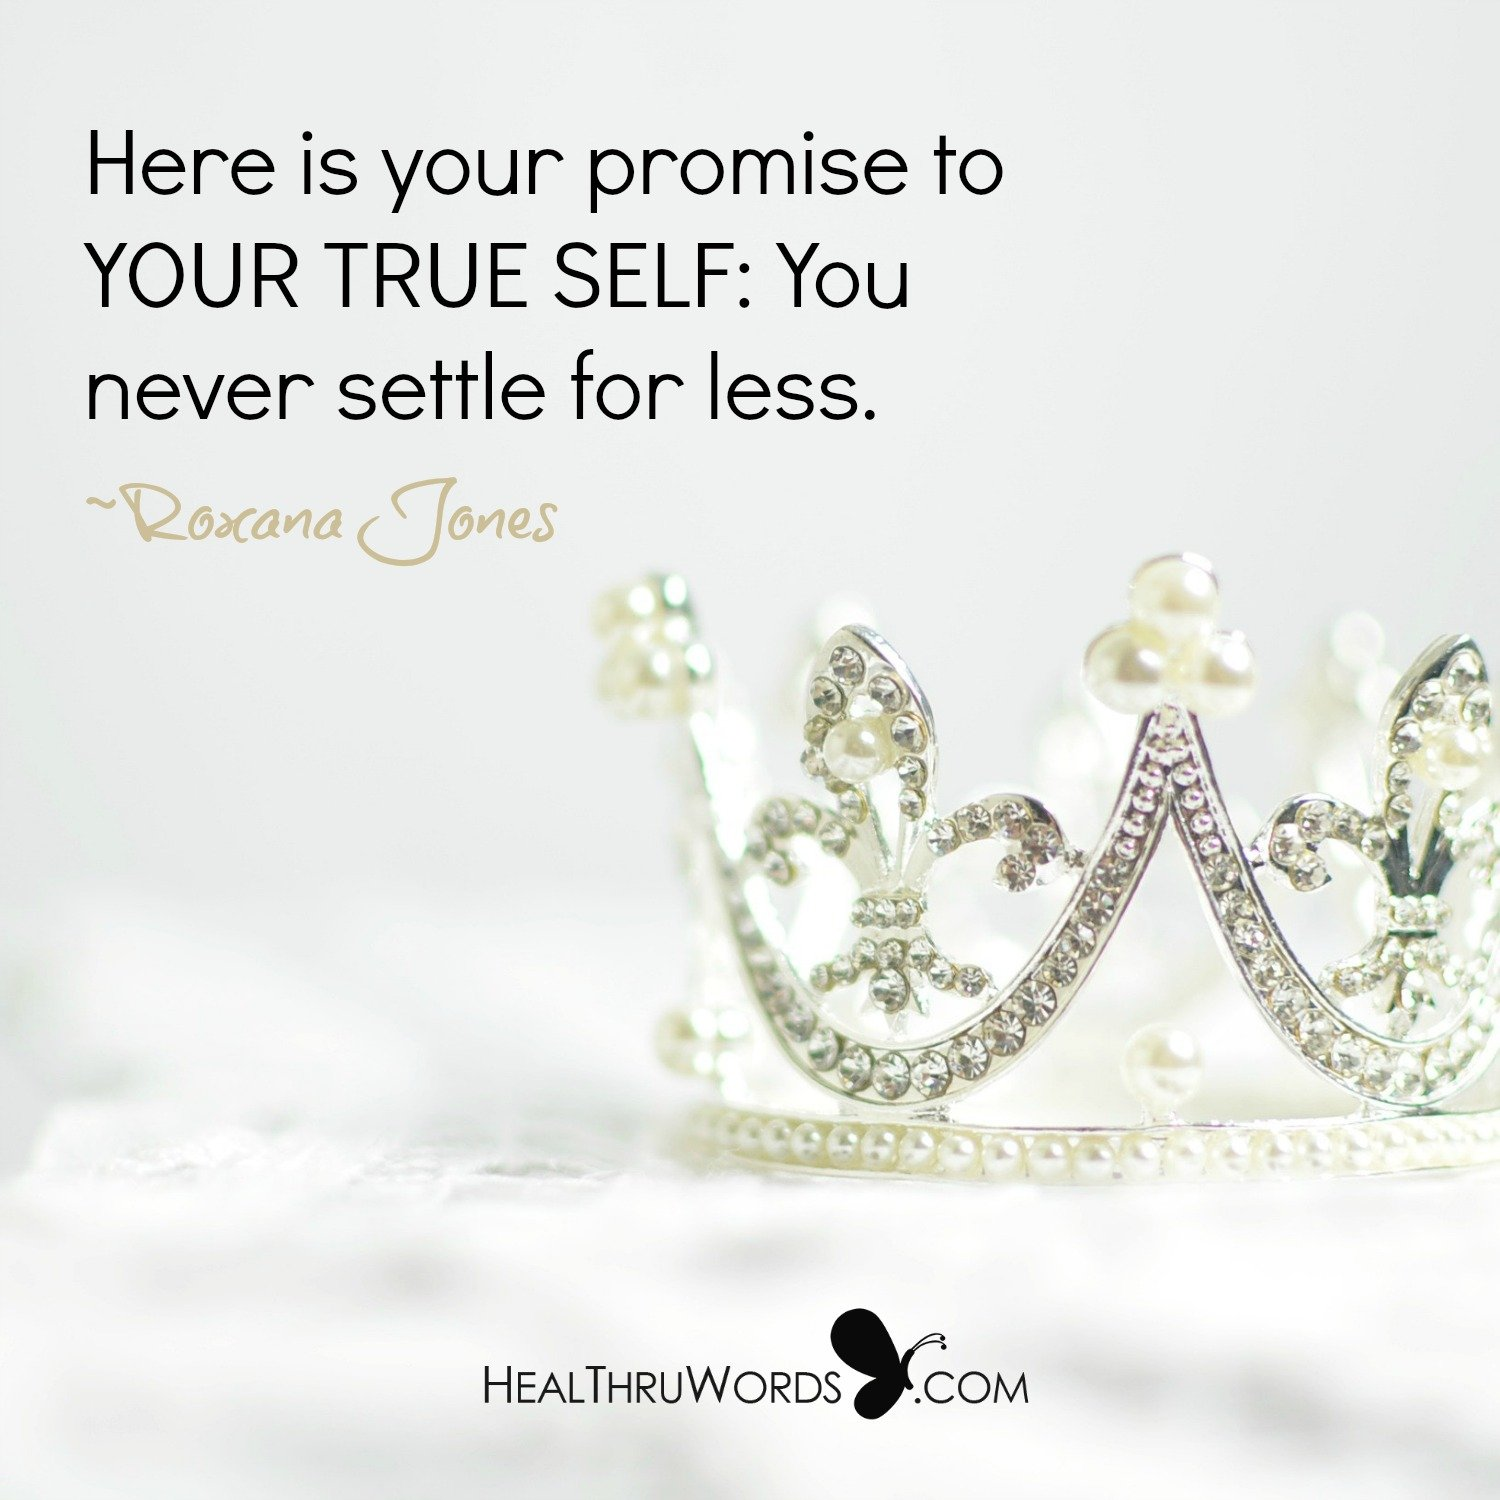 Inspirational Image: Promise to Self